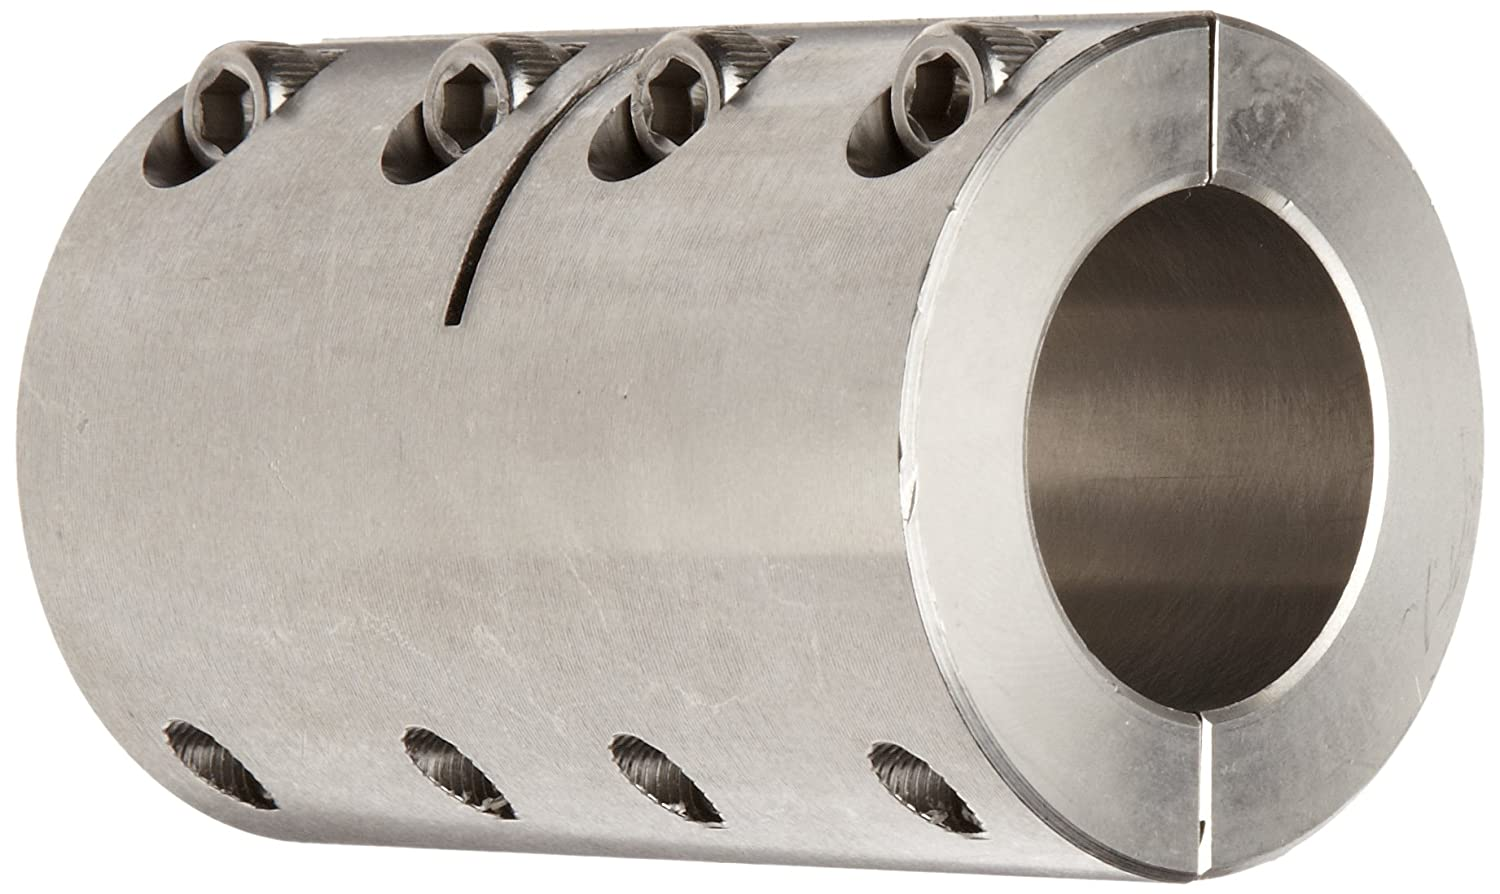 Ruland SPX-24-24-SS Two-Piece Clamping Rigid Coupling, Stainless Steel, 1-1/2